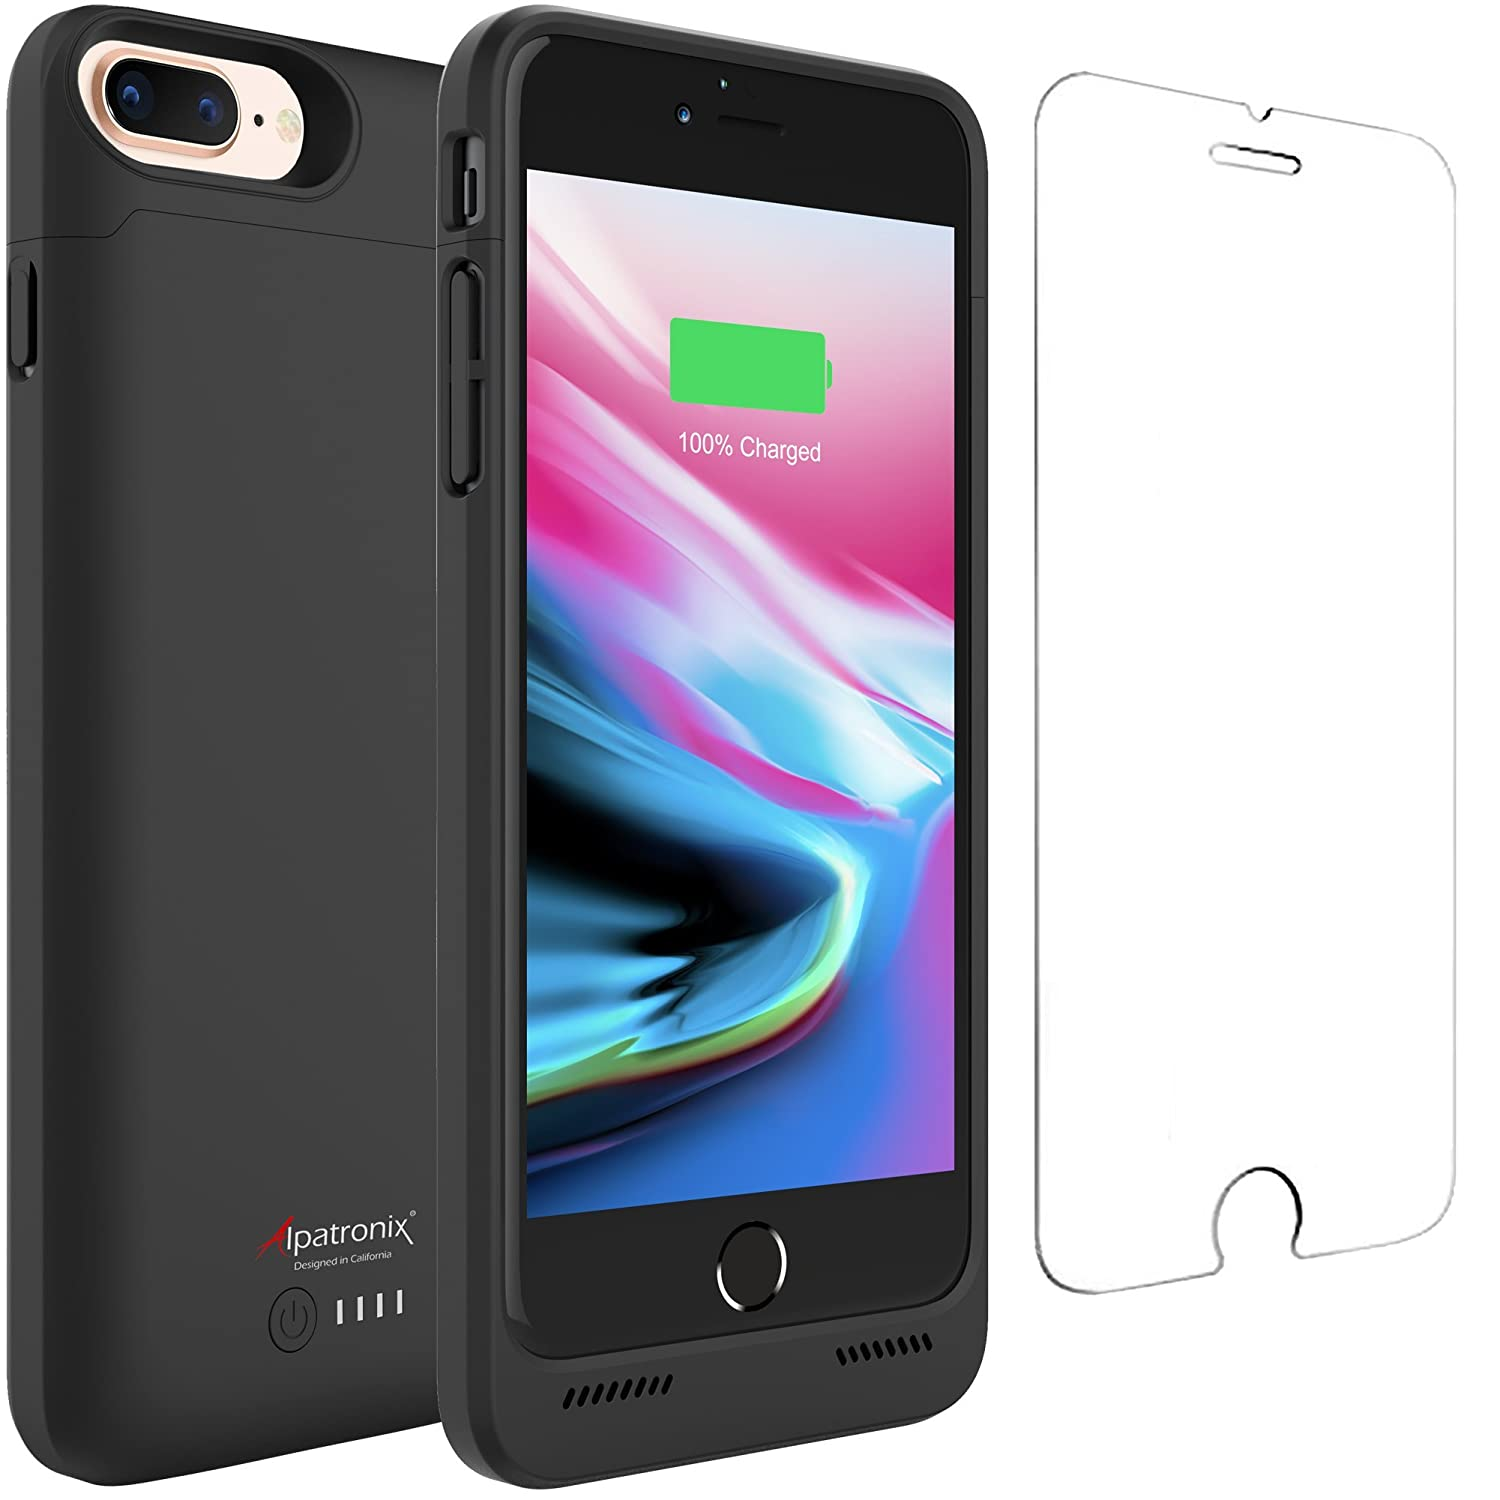 reputable site 4831e 7d5e8 Battery Case for iPhone 8 Plus/7 Plus, Alpatronix BX190plus 5000mAh  Portable Protective Extended Charger Cover w/Qi Wireless Charging  Compatible ...